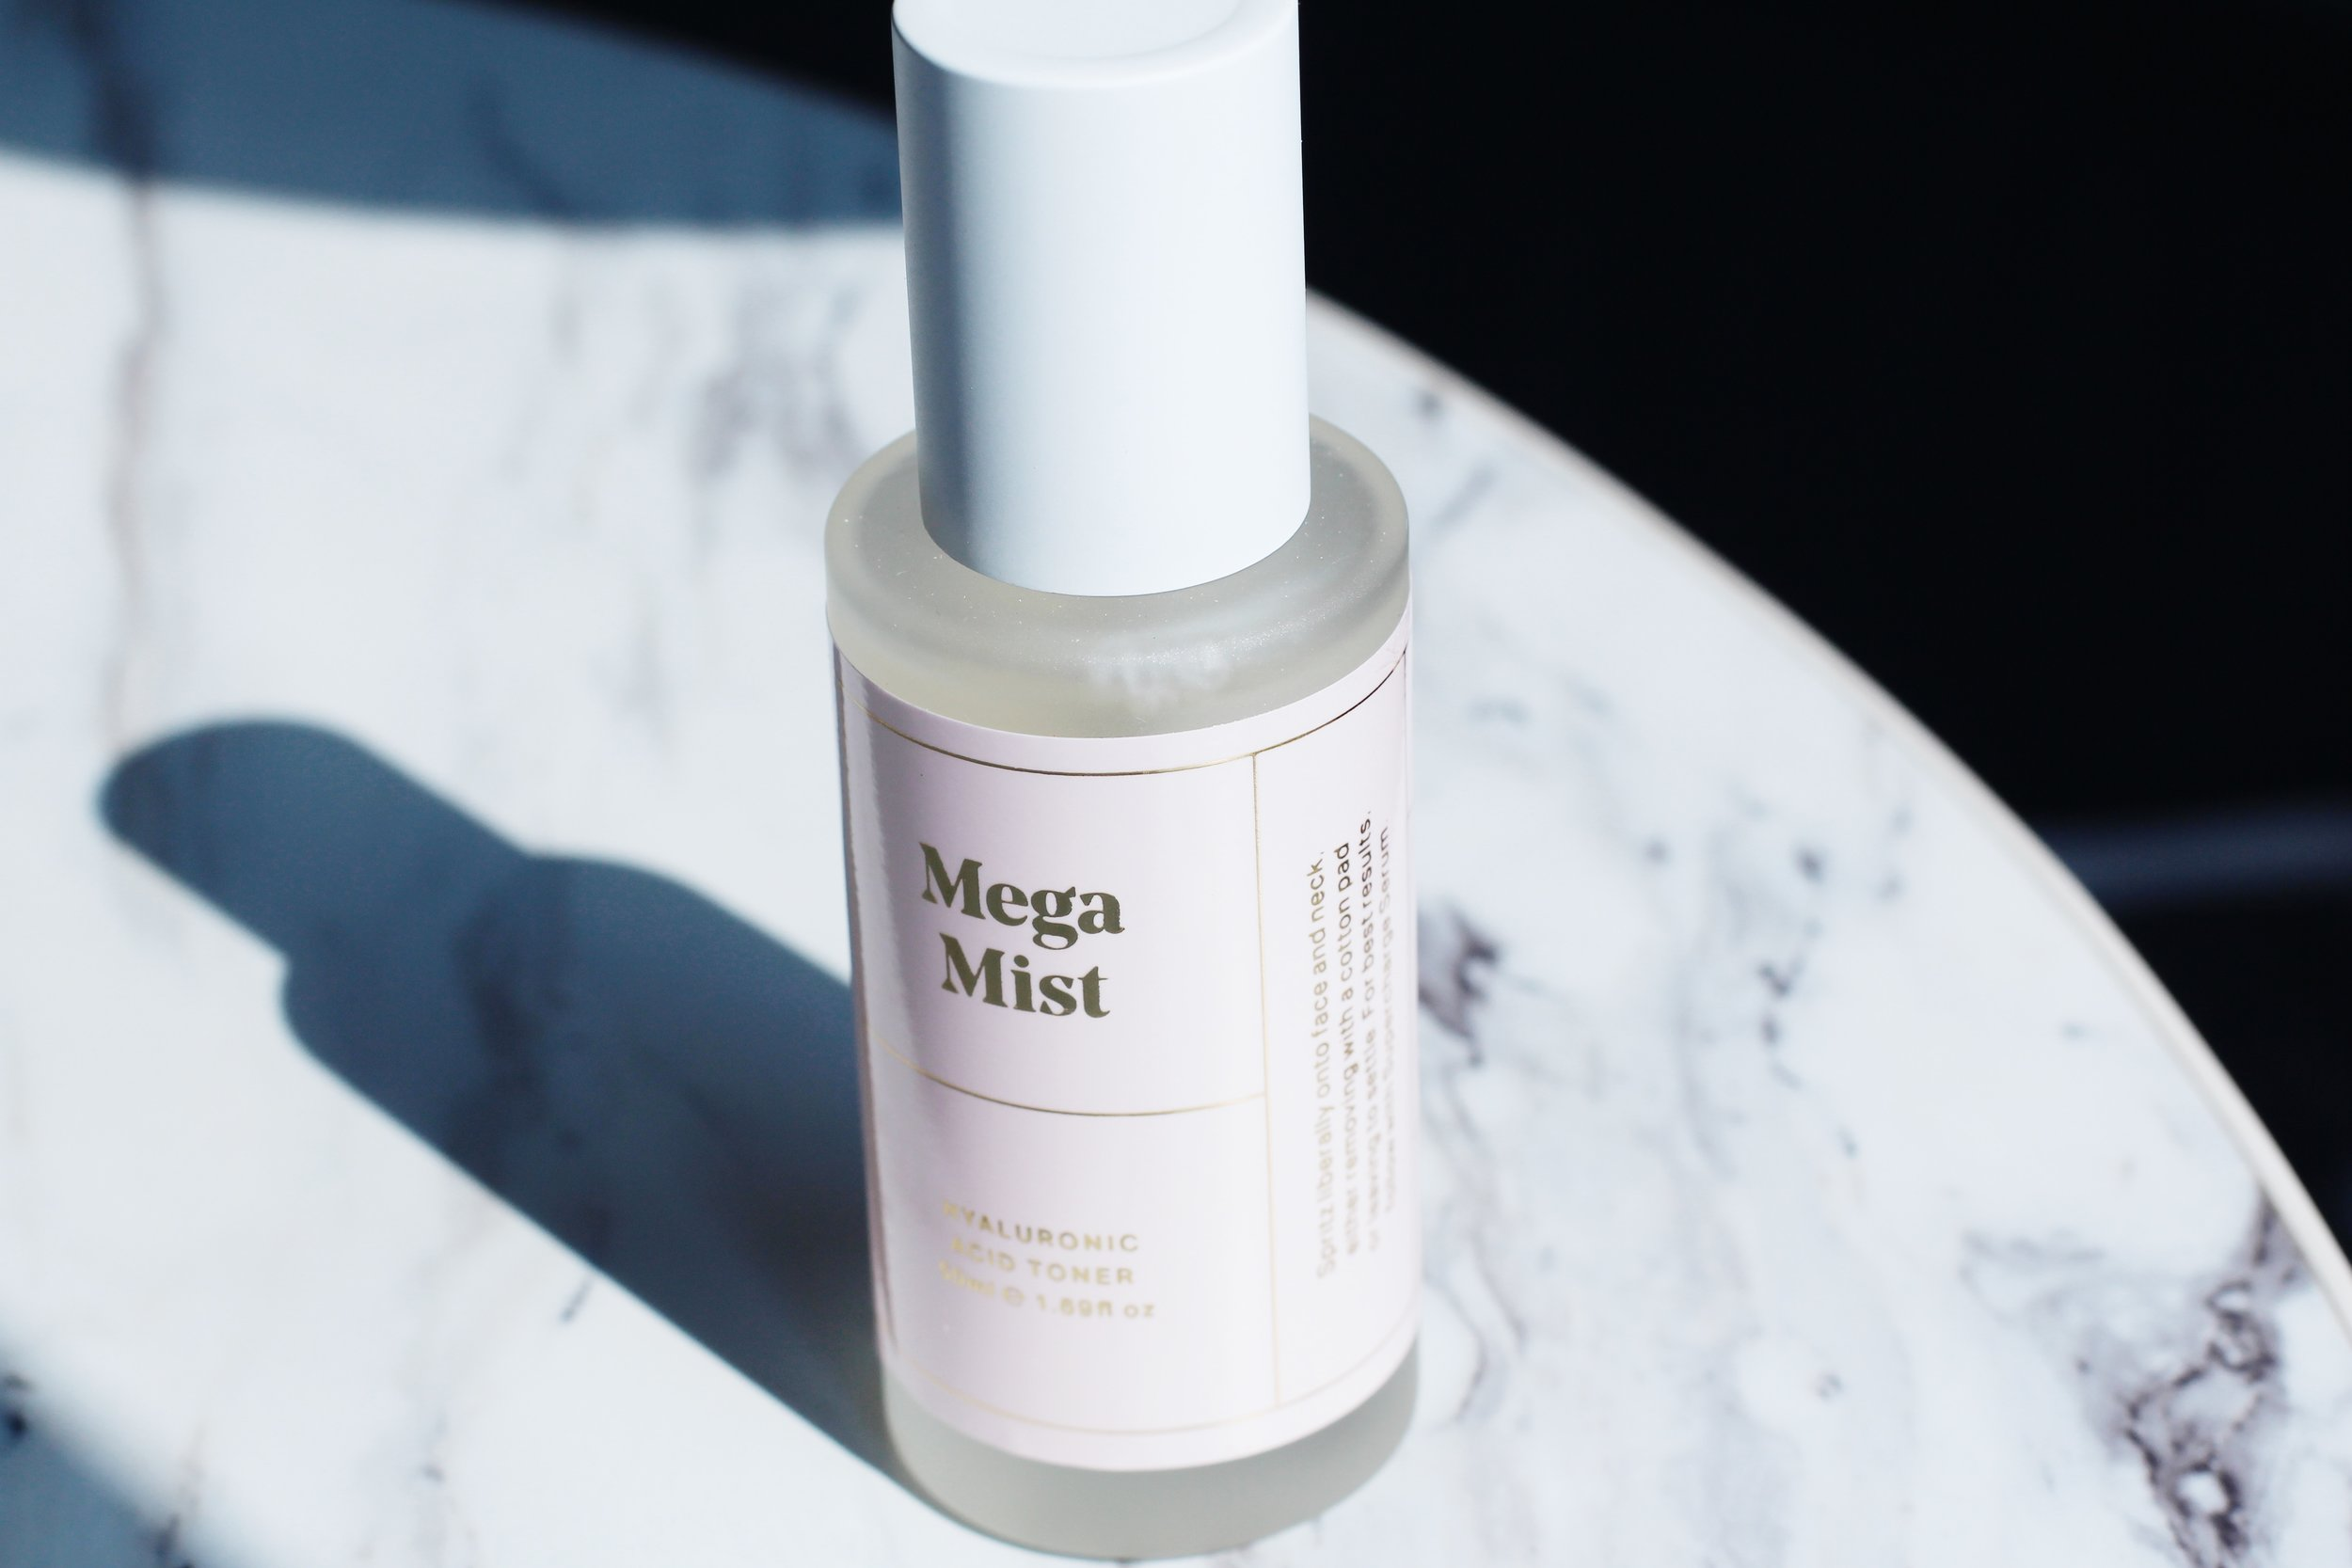 """MEGA MIST-HYALURONIC ACID TONER  """"Rose, orange blossom and lemon balm waters refreshes, hydrates and nourishes without feeling heavy, even on oily or combination skin types.Mega Mist truly quenches thirsty skin and can be used as a traditional toner after cleansing or facial mist to perk up dry skin at any point throughout the day."""""""